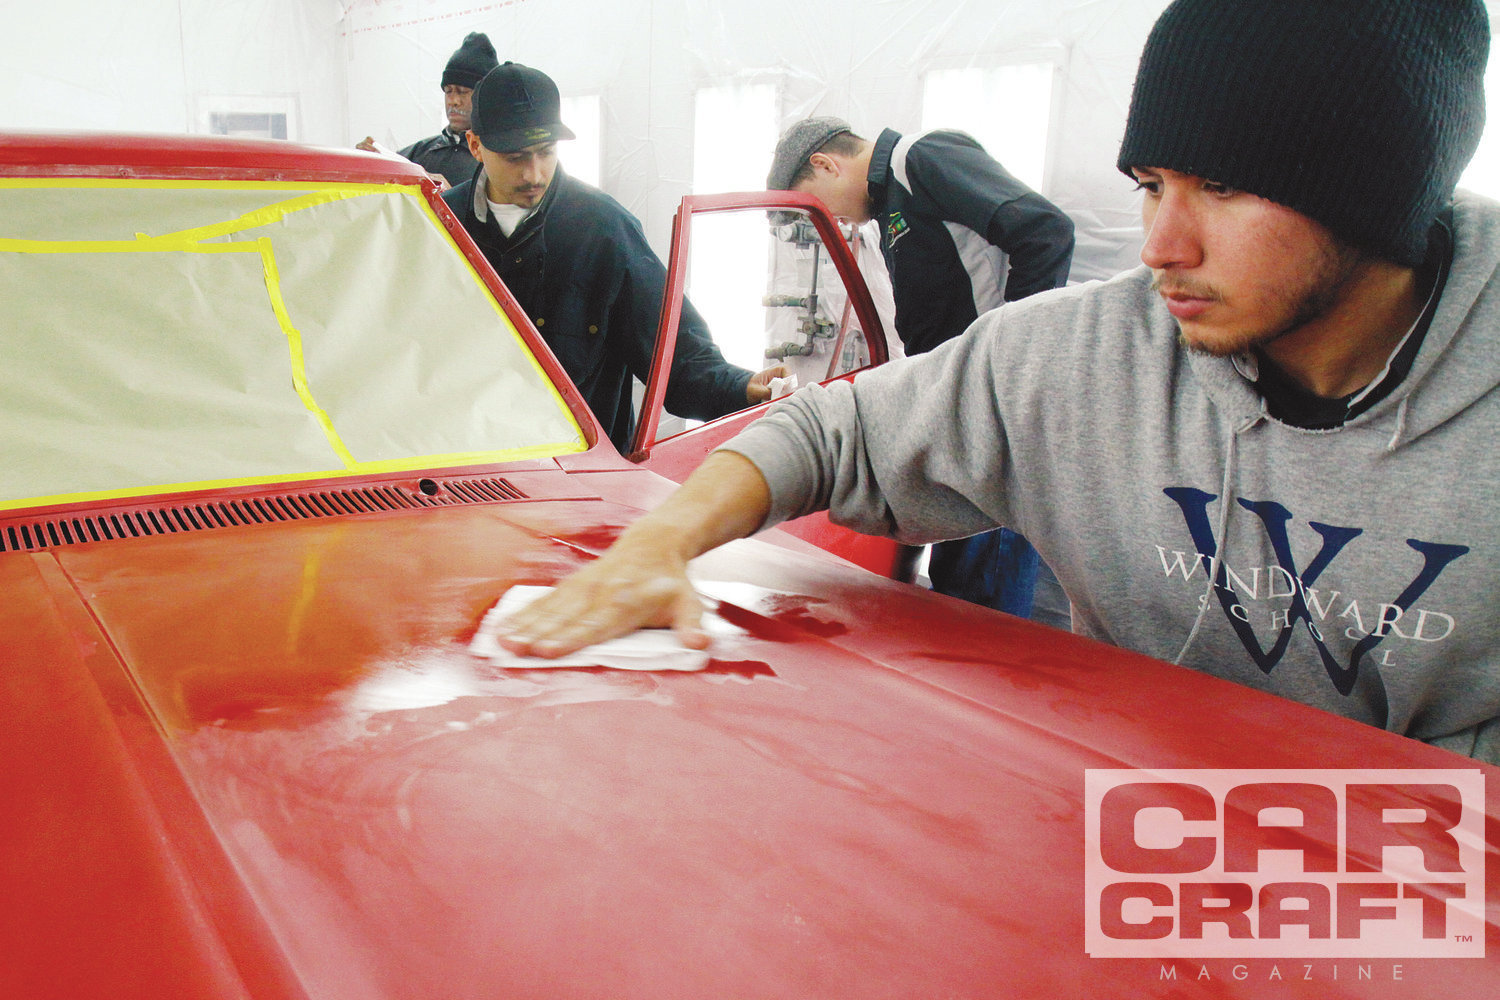 [7] After wet sanding, we thoroughly washed the car. The sanding residue will dry to a fine powder that can get churned up and land in our new paint job, making it a dusty mess. After washing, we began masking the car before pushing it into the spray booth.